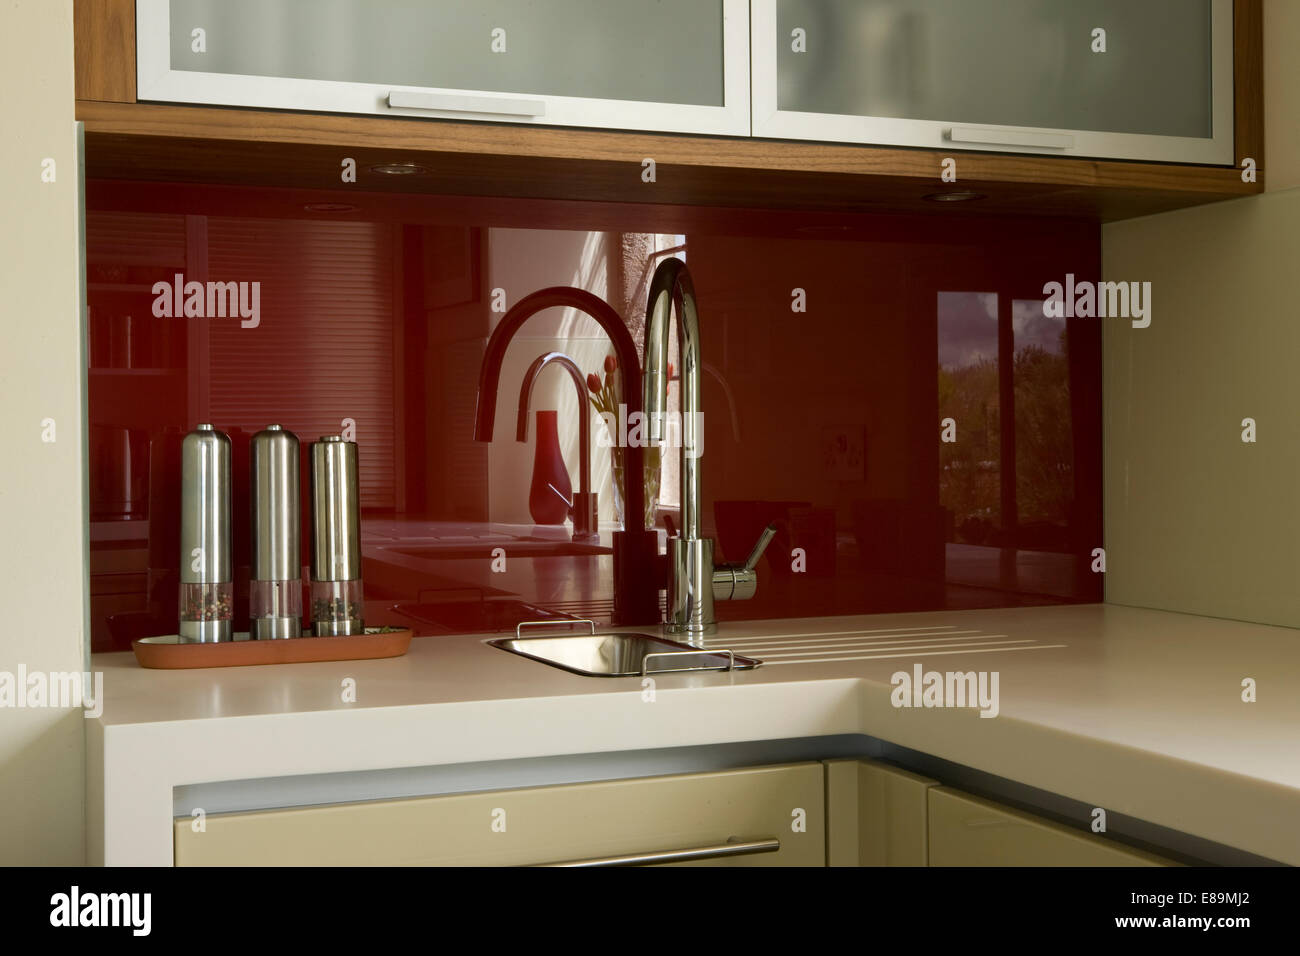 Chrome pepper and salt mills beside chrome tap at miniature sink - Stock Image